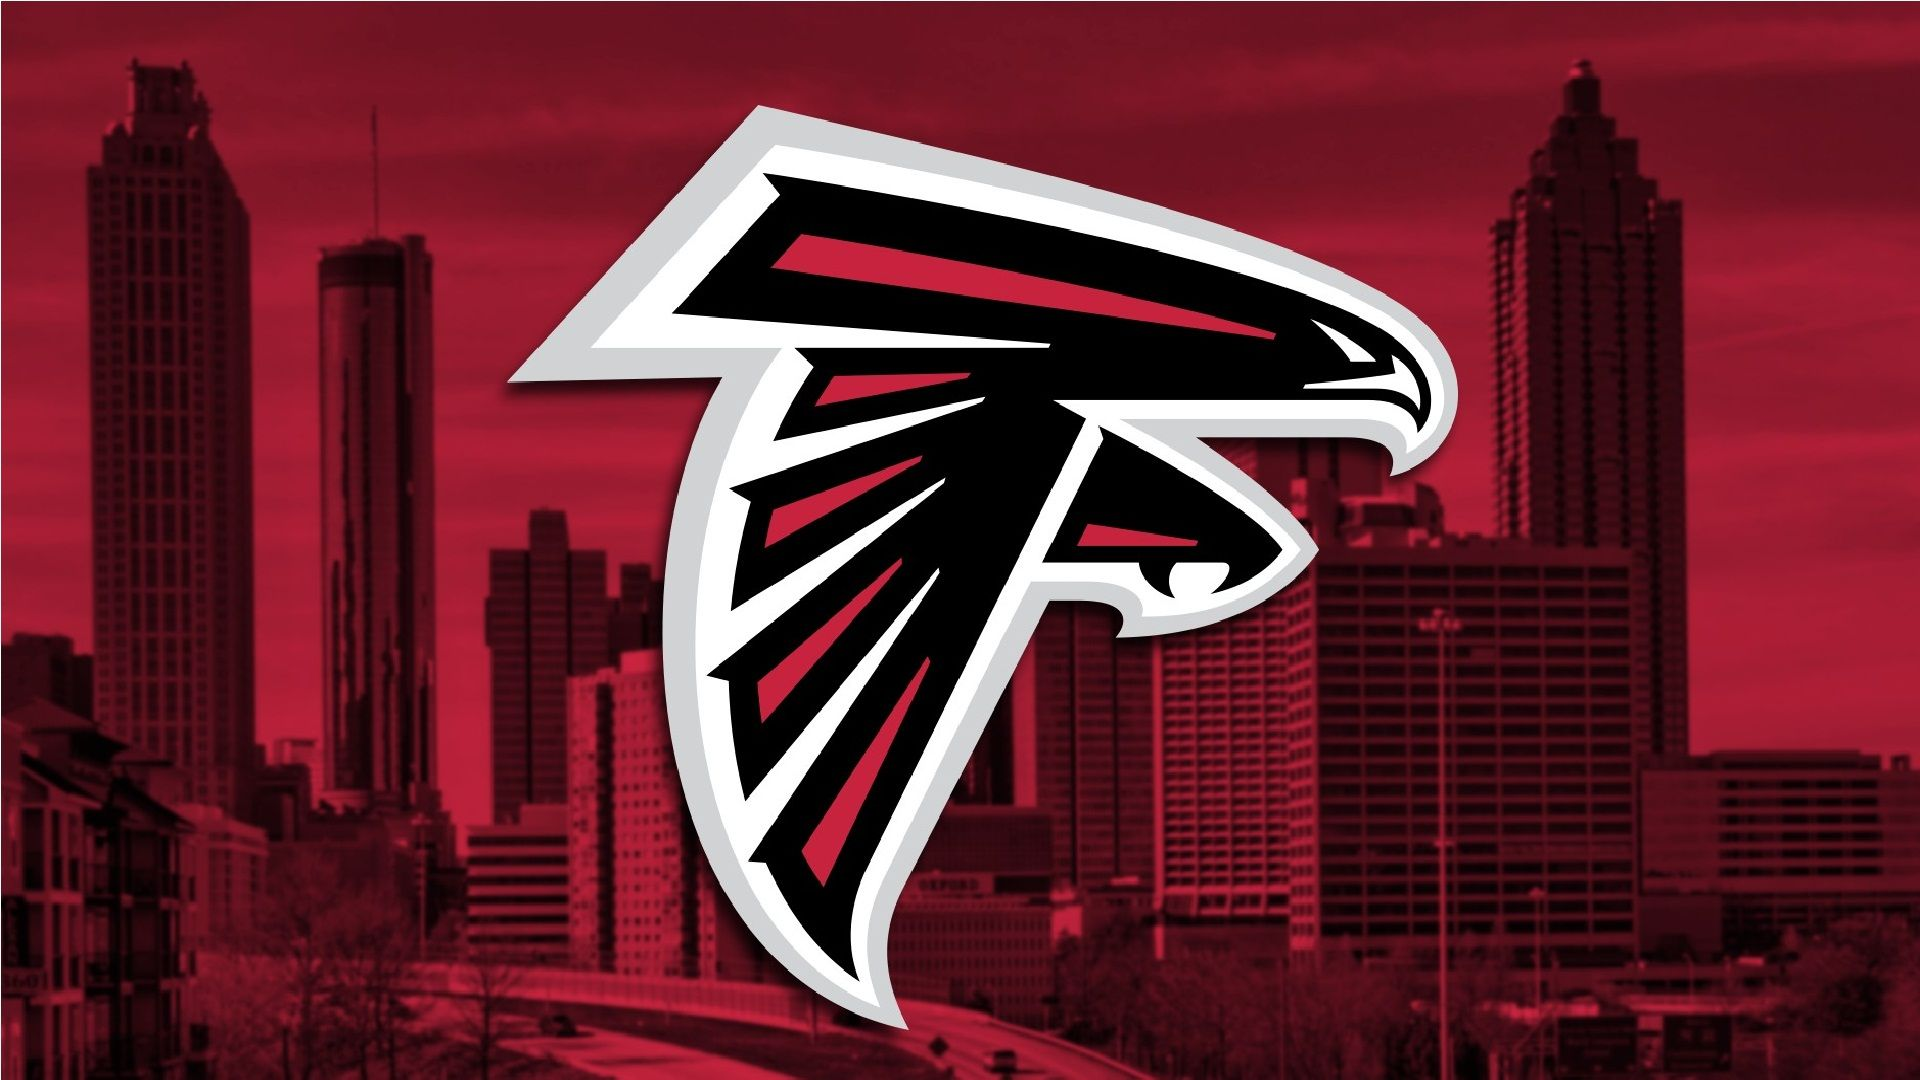 Atlanta Falcons Desktop Wallpapers 2020 Nfl Football Wallpapers Atlanta Falcons Wallpaper Atlanta Falcons Nfl Football Wallpaper